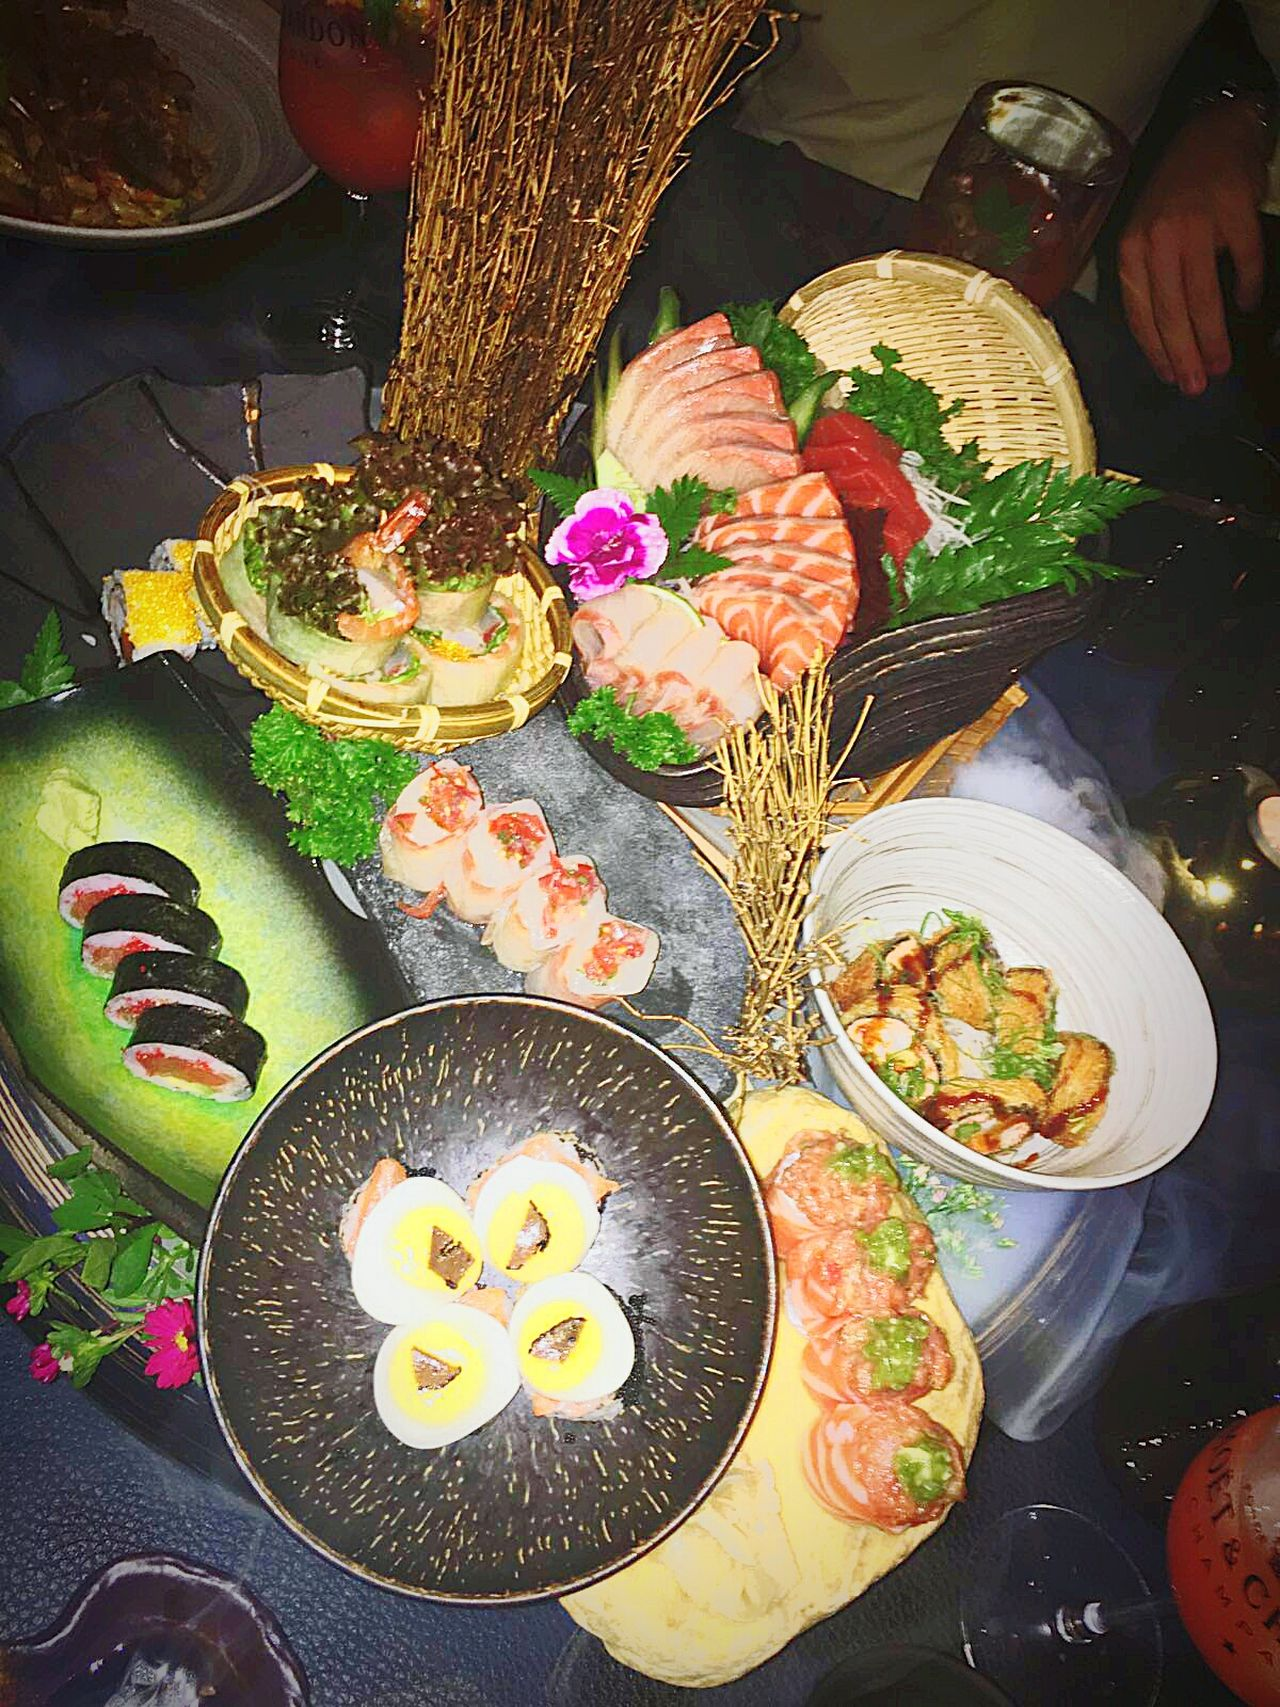 Sushi Time Sushiaddict Sushi Restaurant Sushilover Gourmet Food And Drink Healthy Eating Food